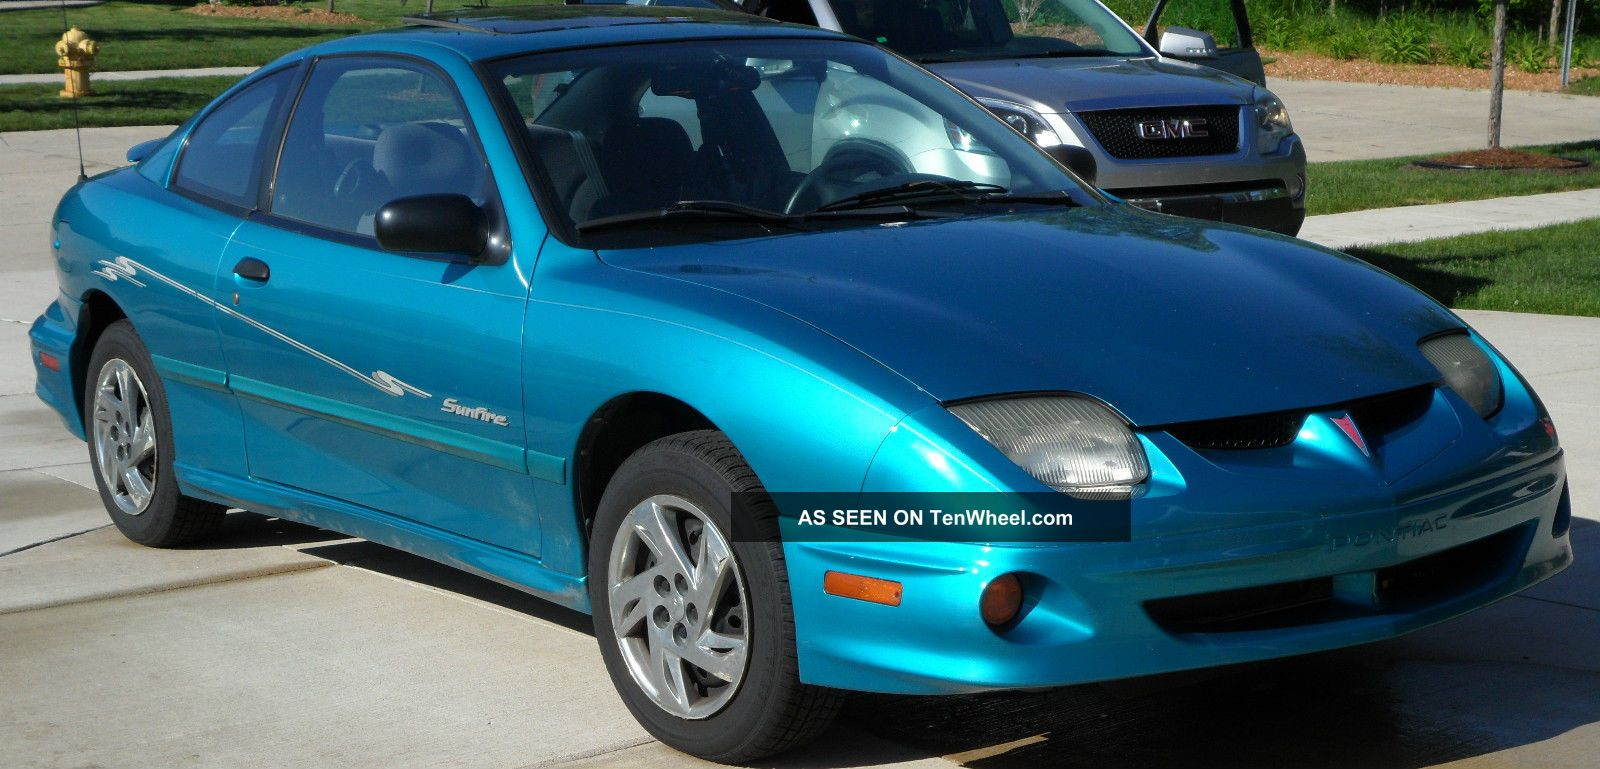 2000 pontiac sunfire se coupe 2 door 2 2l. Black Bedroom Furniture Sets. Home Design Ideas